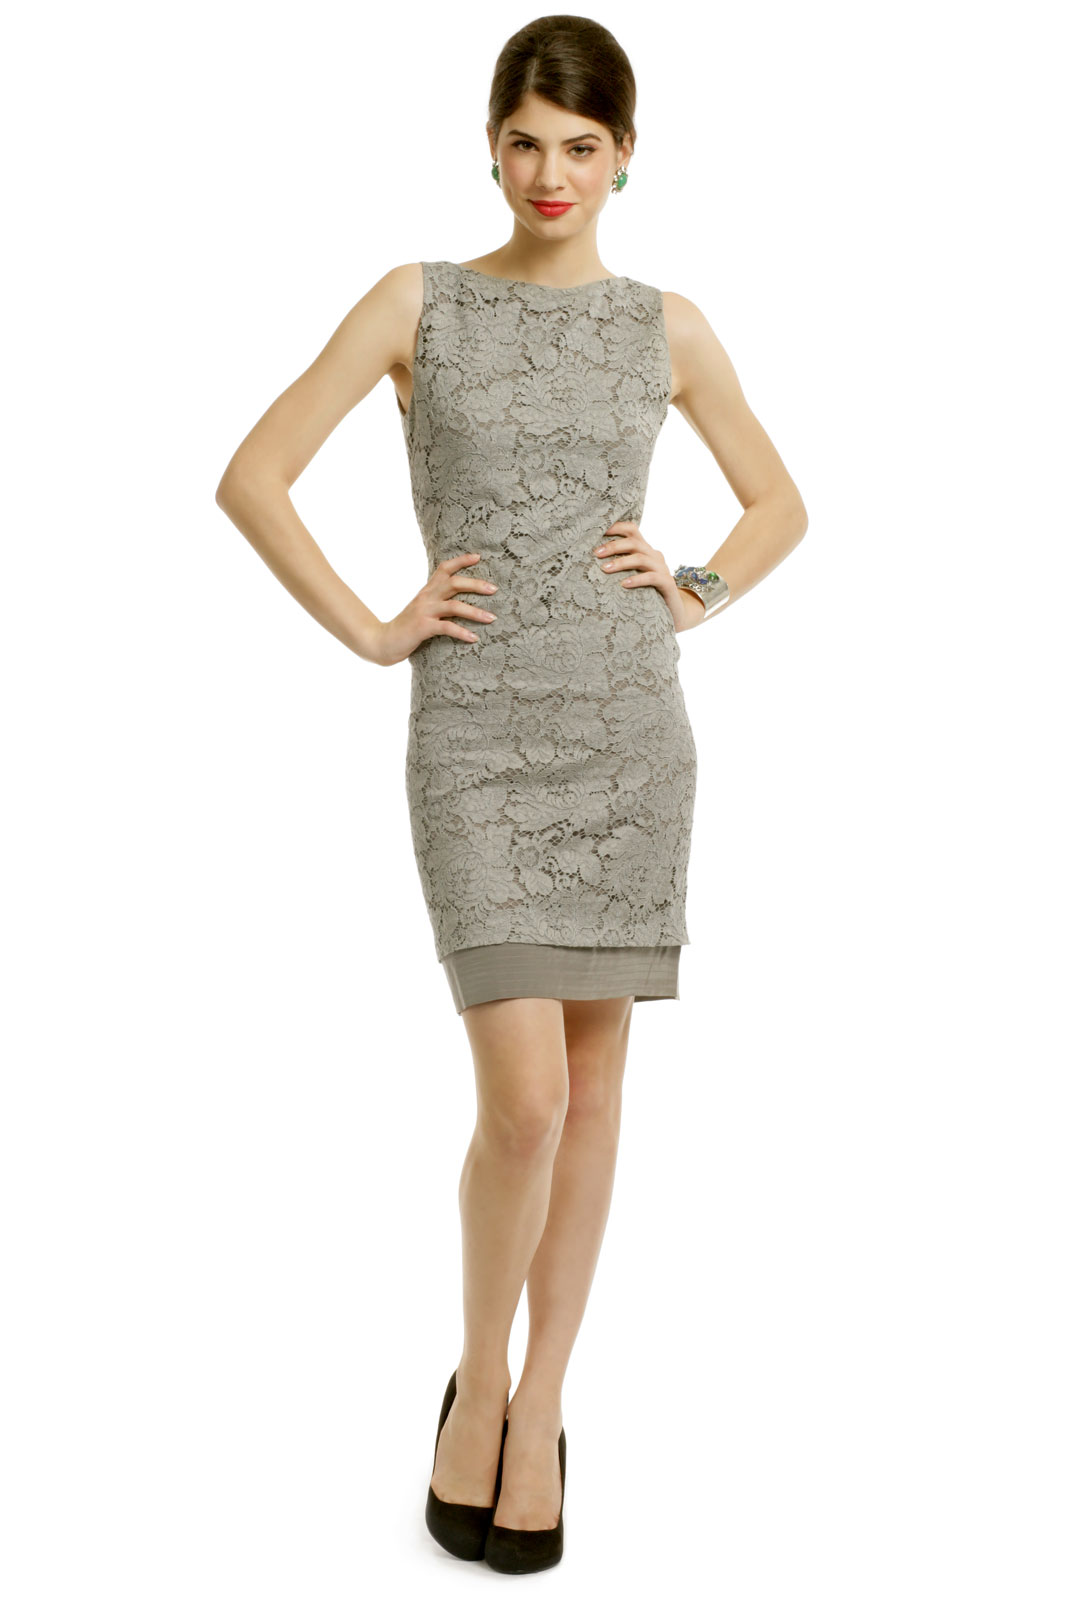 Shop dressbarn for the latest in sheath dresses. You'll discover on trend styles in a variety of patterns and prints that can be worn for any occasion. Add some extra flair to your weekend or workwear wardrobe with sheath dresses.